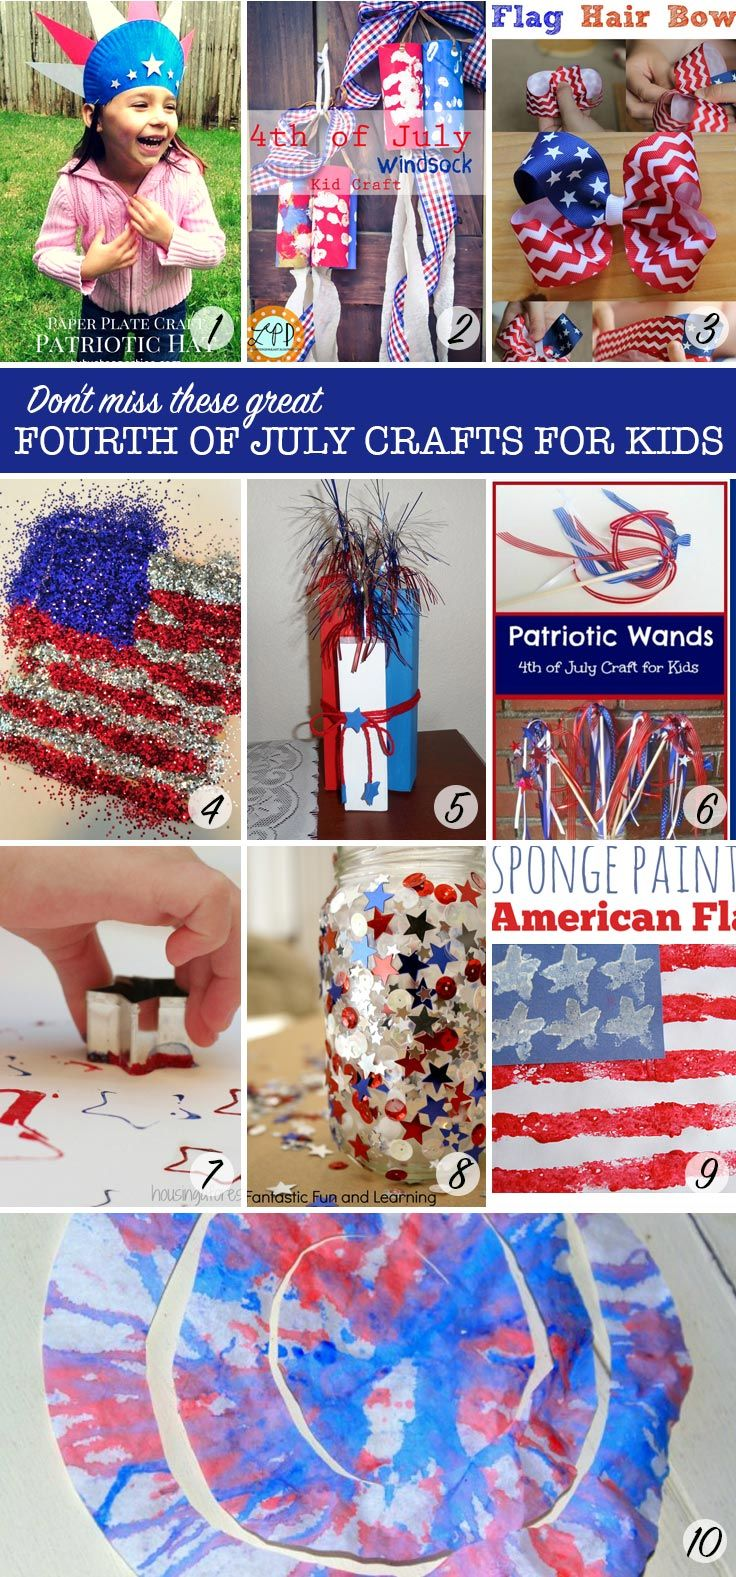 Love these ideas for Fourth of July crafts for kids to make!